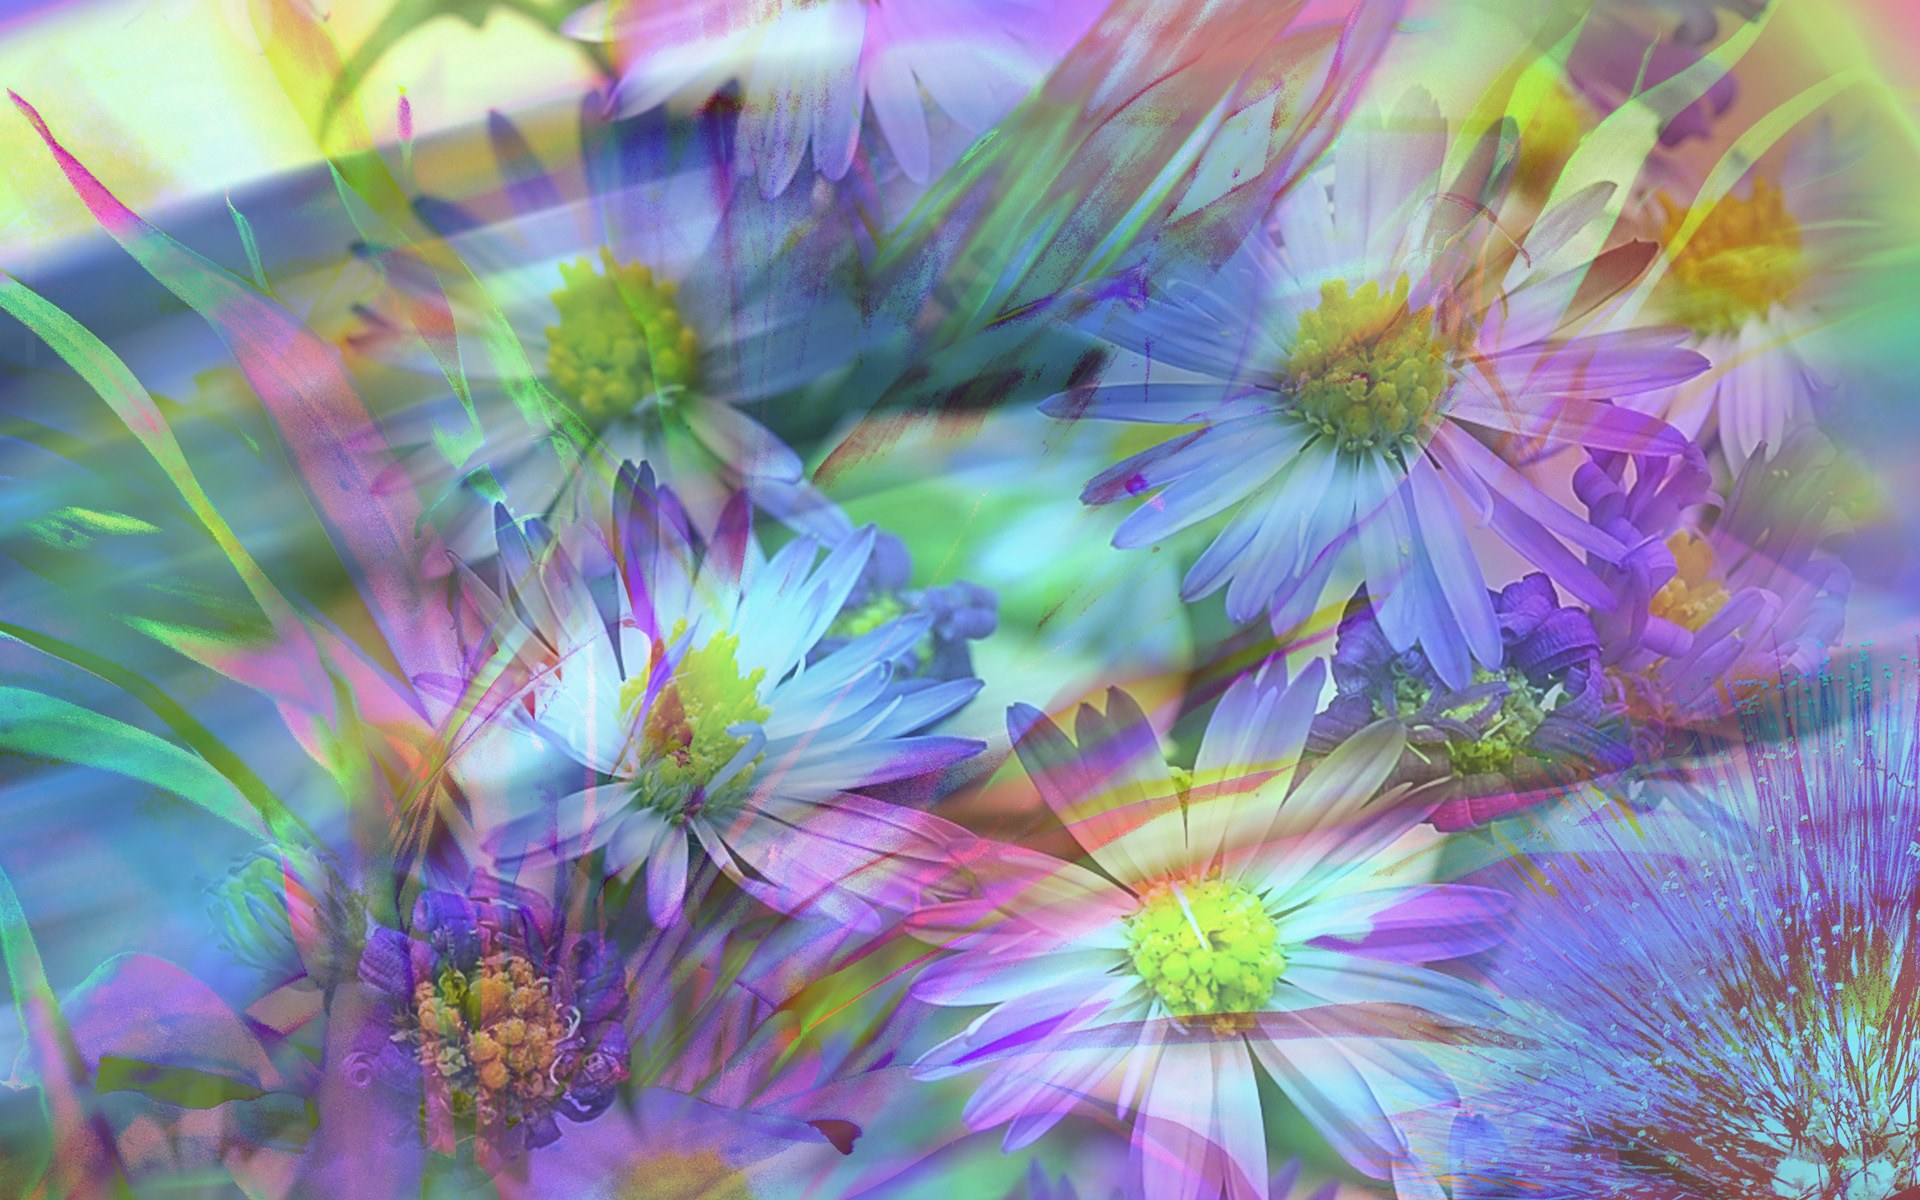 digital floral illustration flower photo manipulations